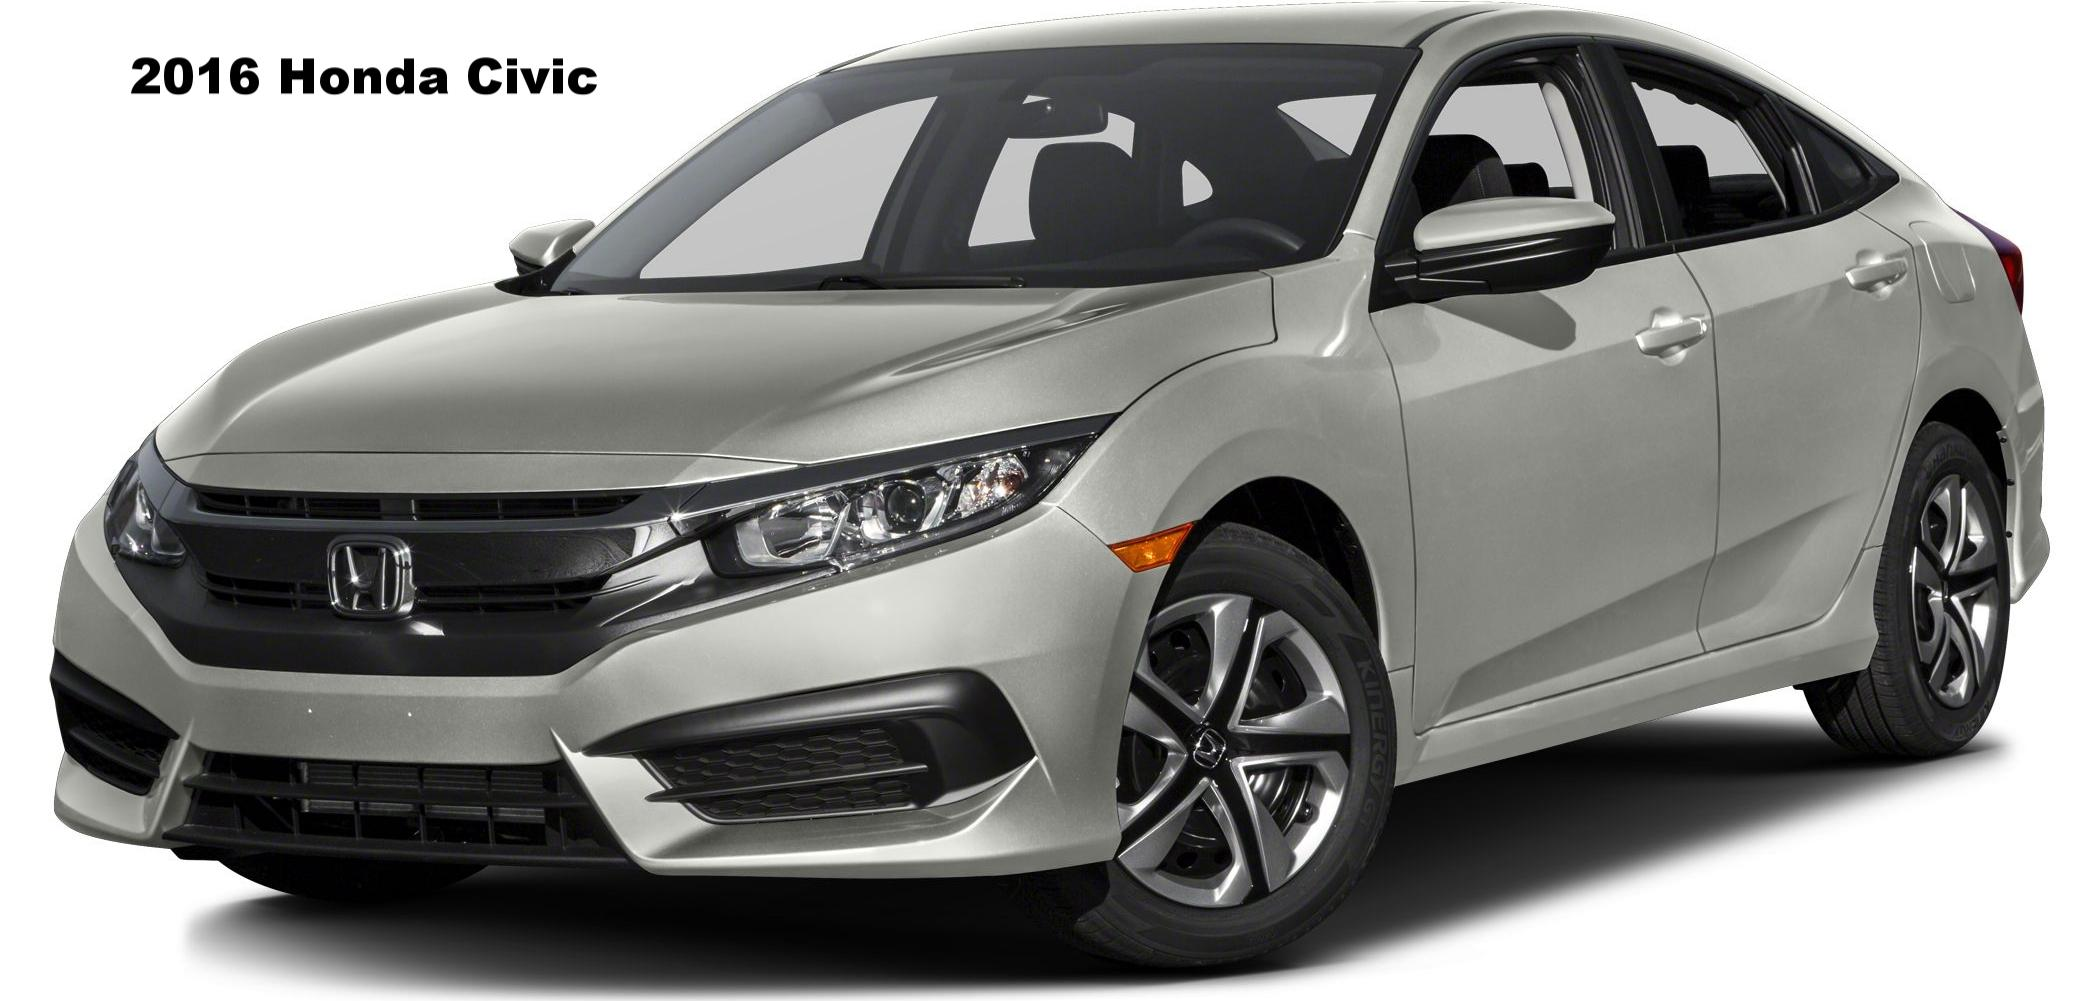 2016 Honda Civic Winnipeg